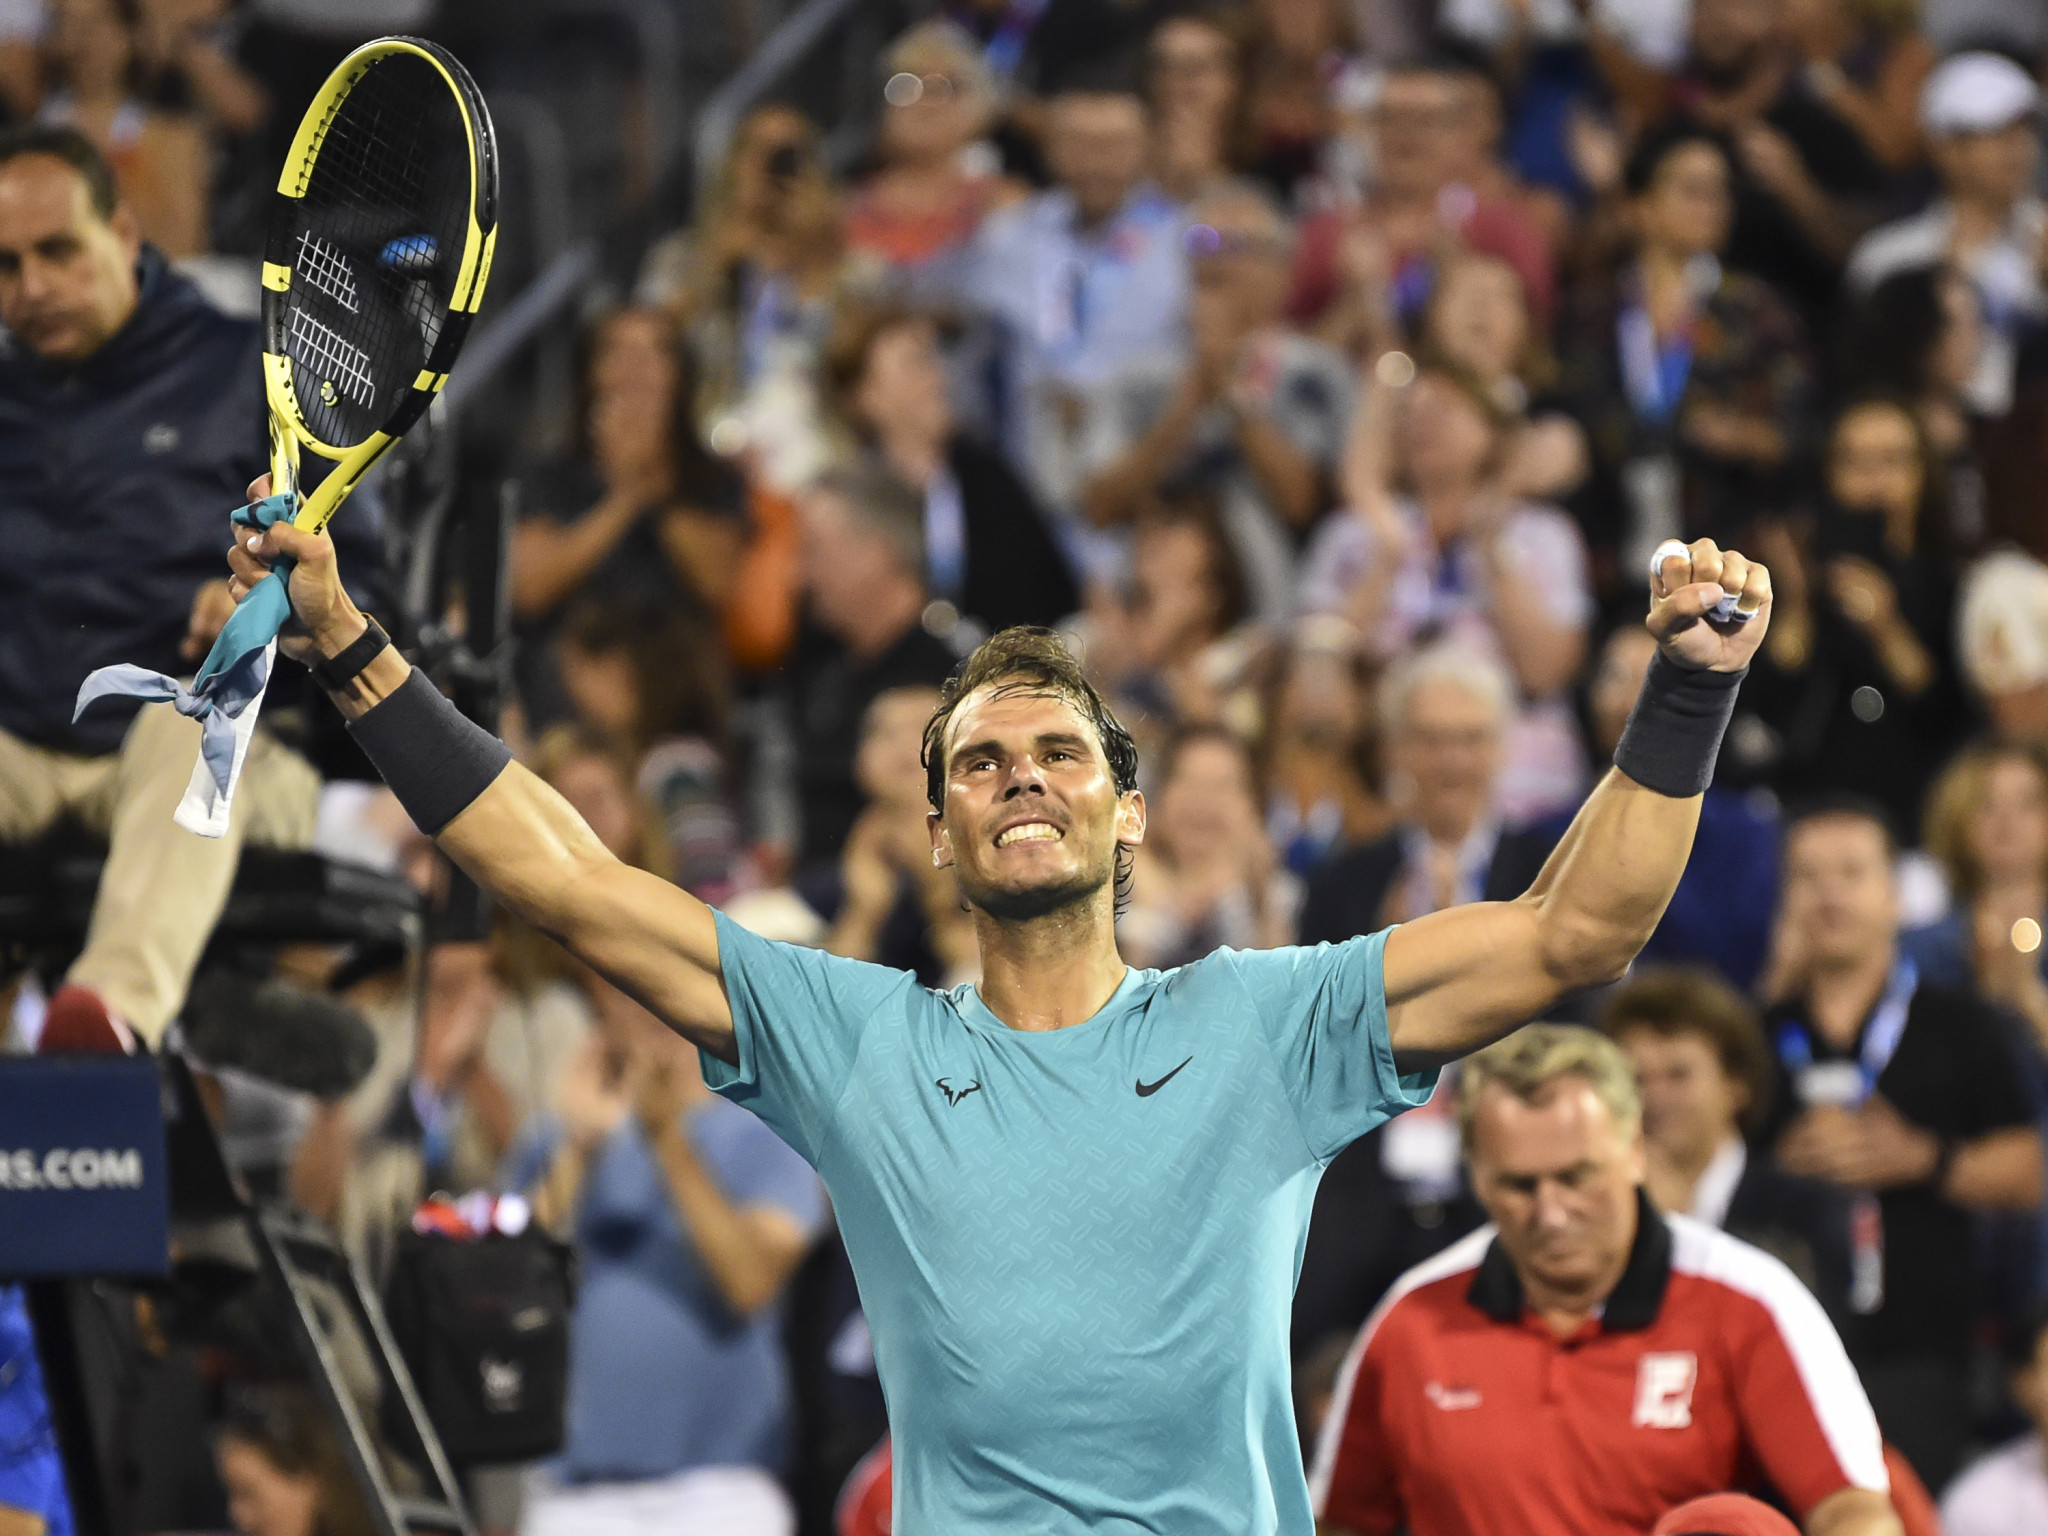 Nadal secures record-breaking win to reach Rogers Cup quarter-finals